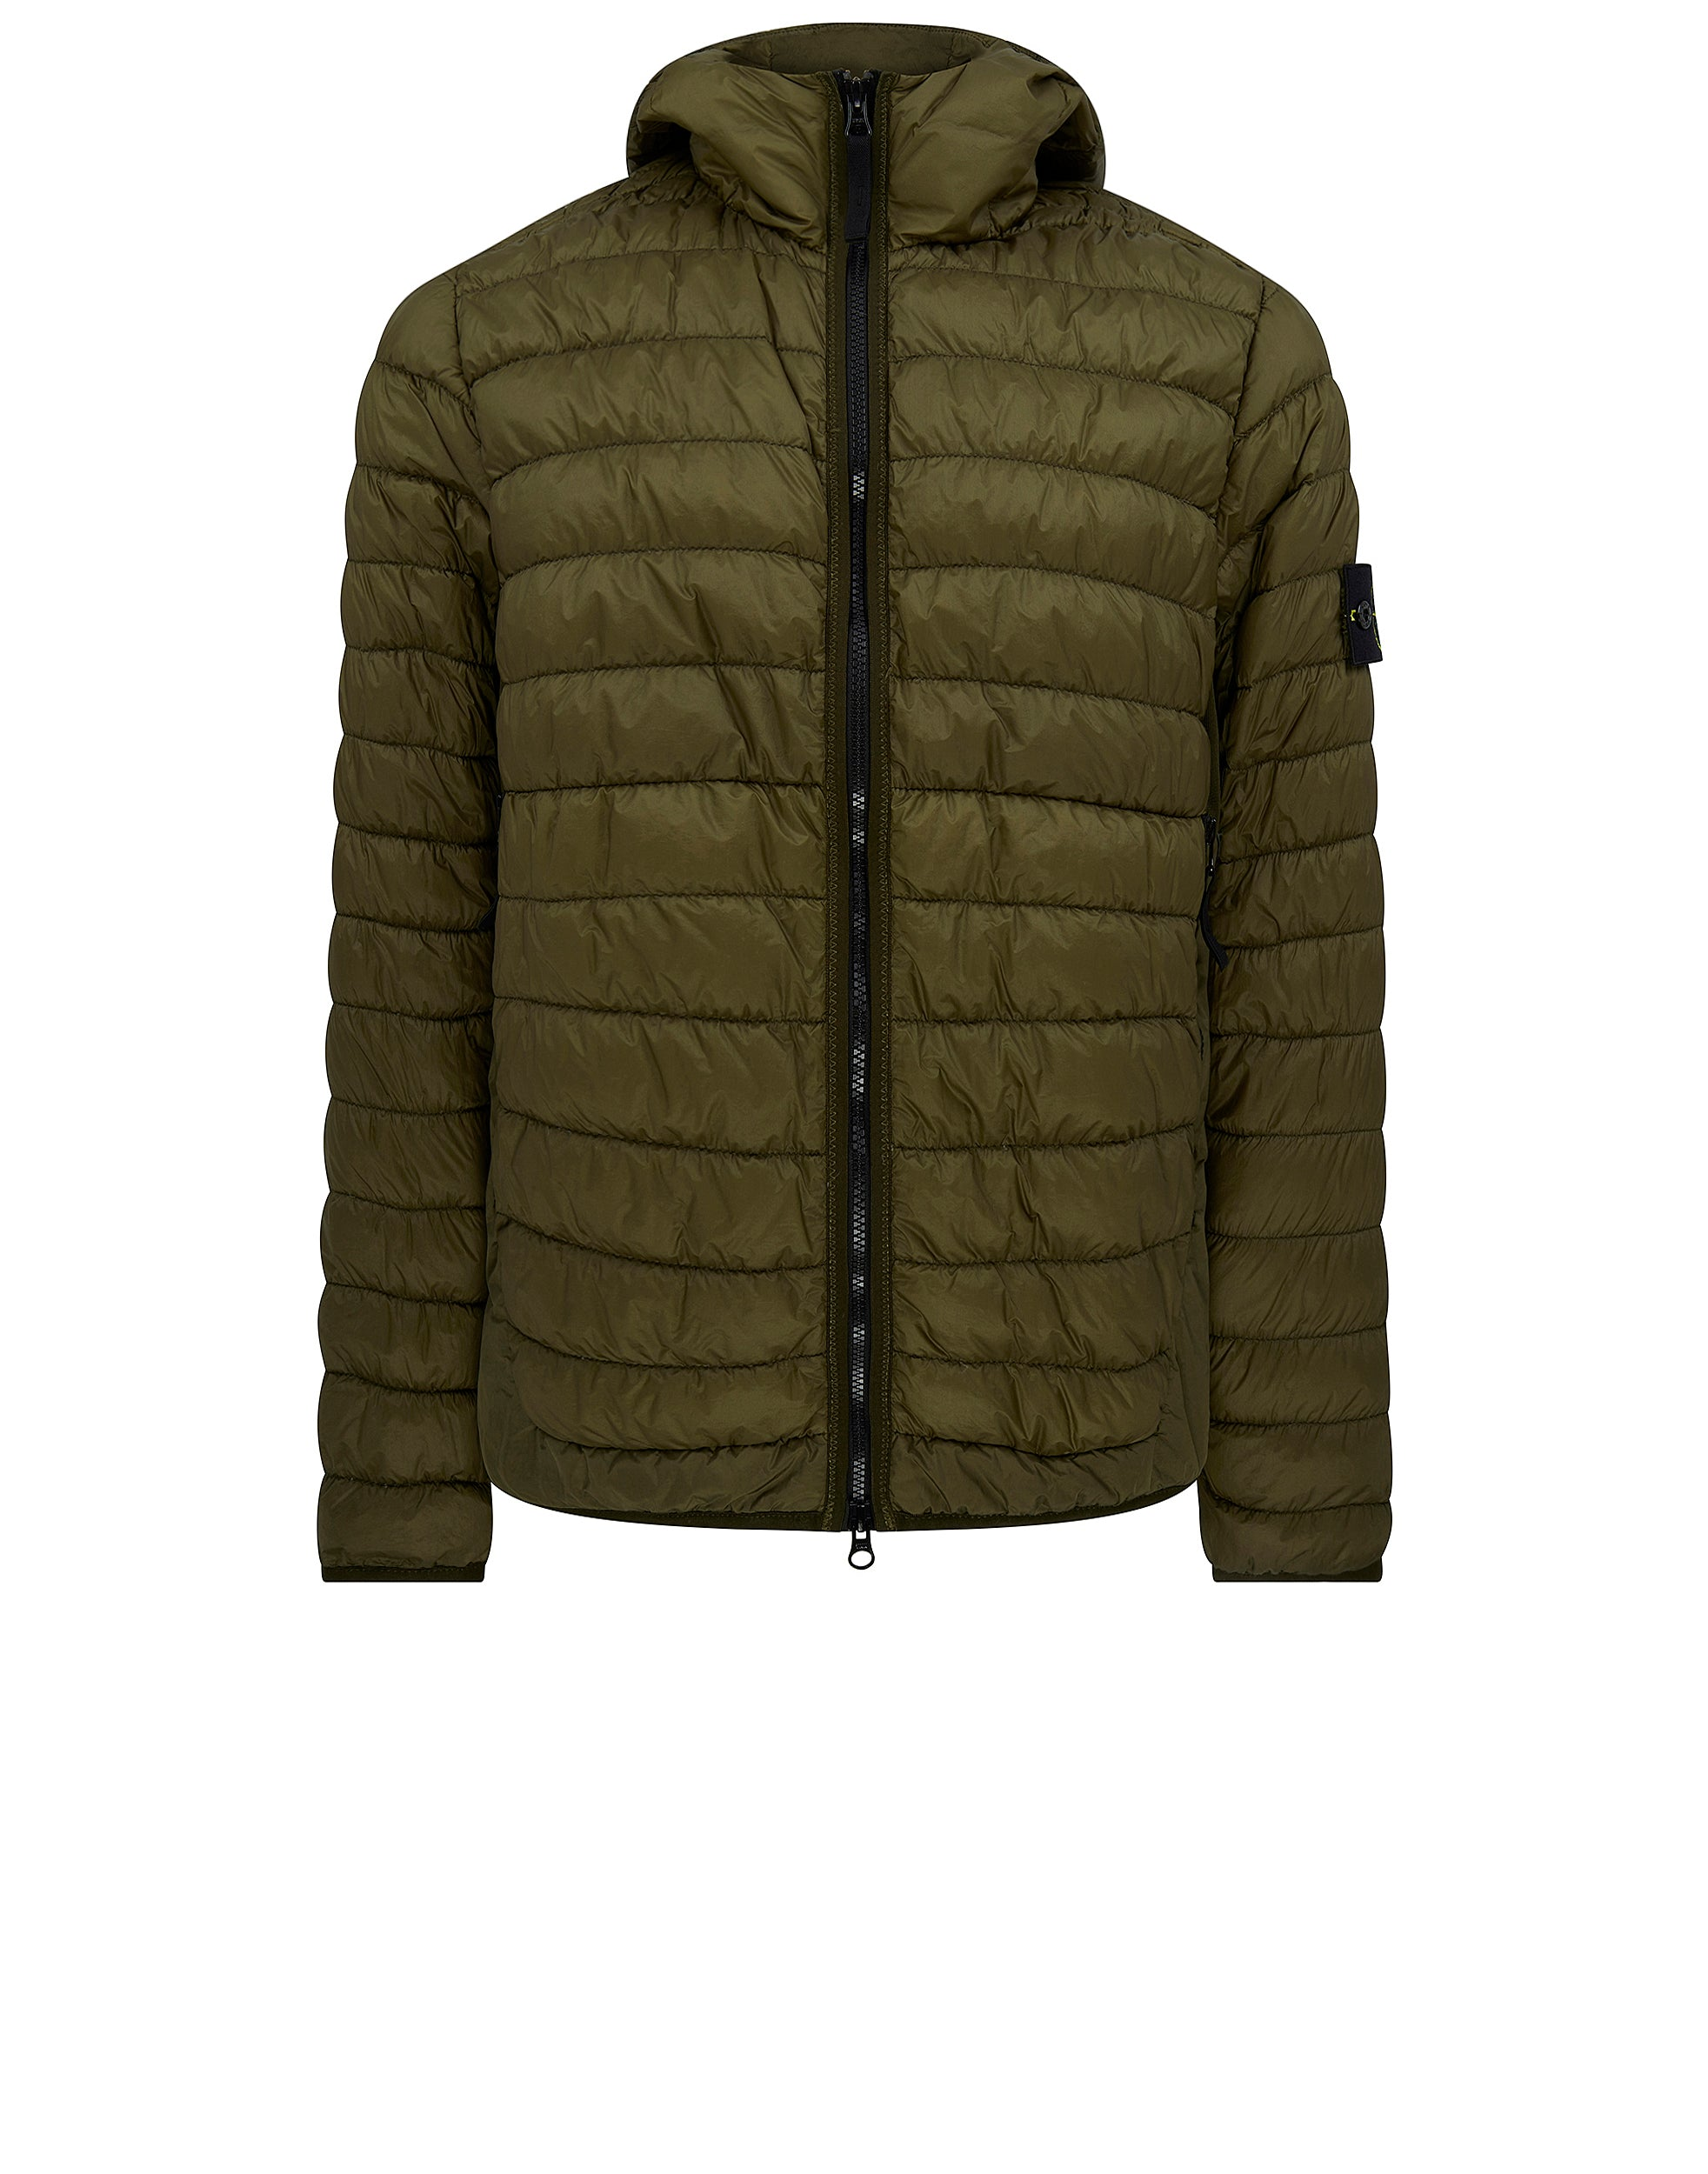 40124 Garment Dyed Micro Yarn Down Jacket in Military Green